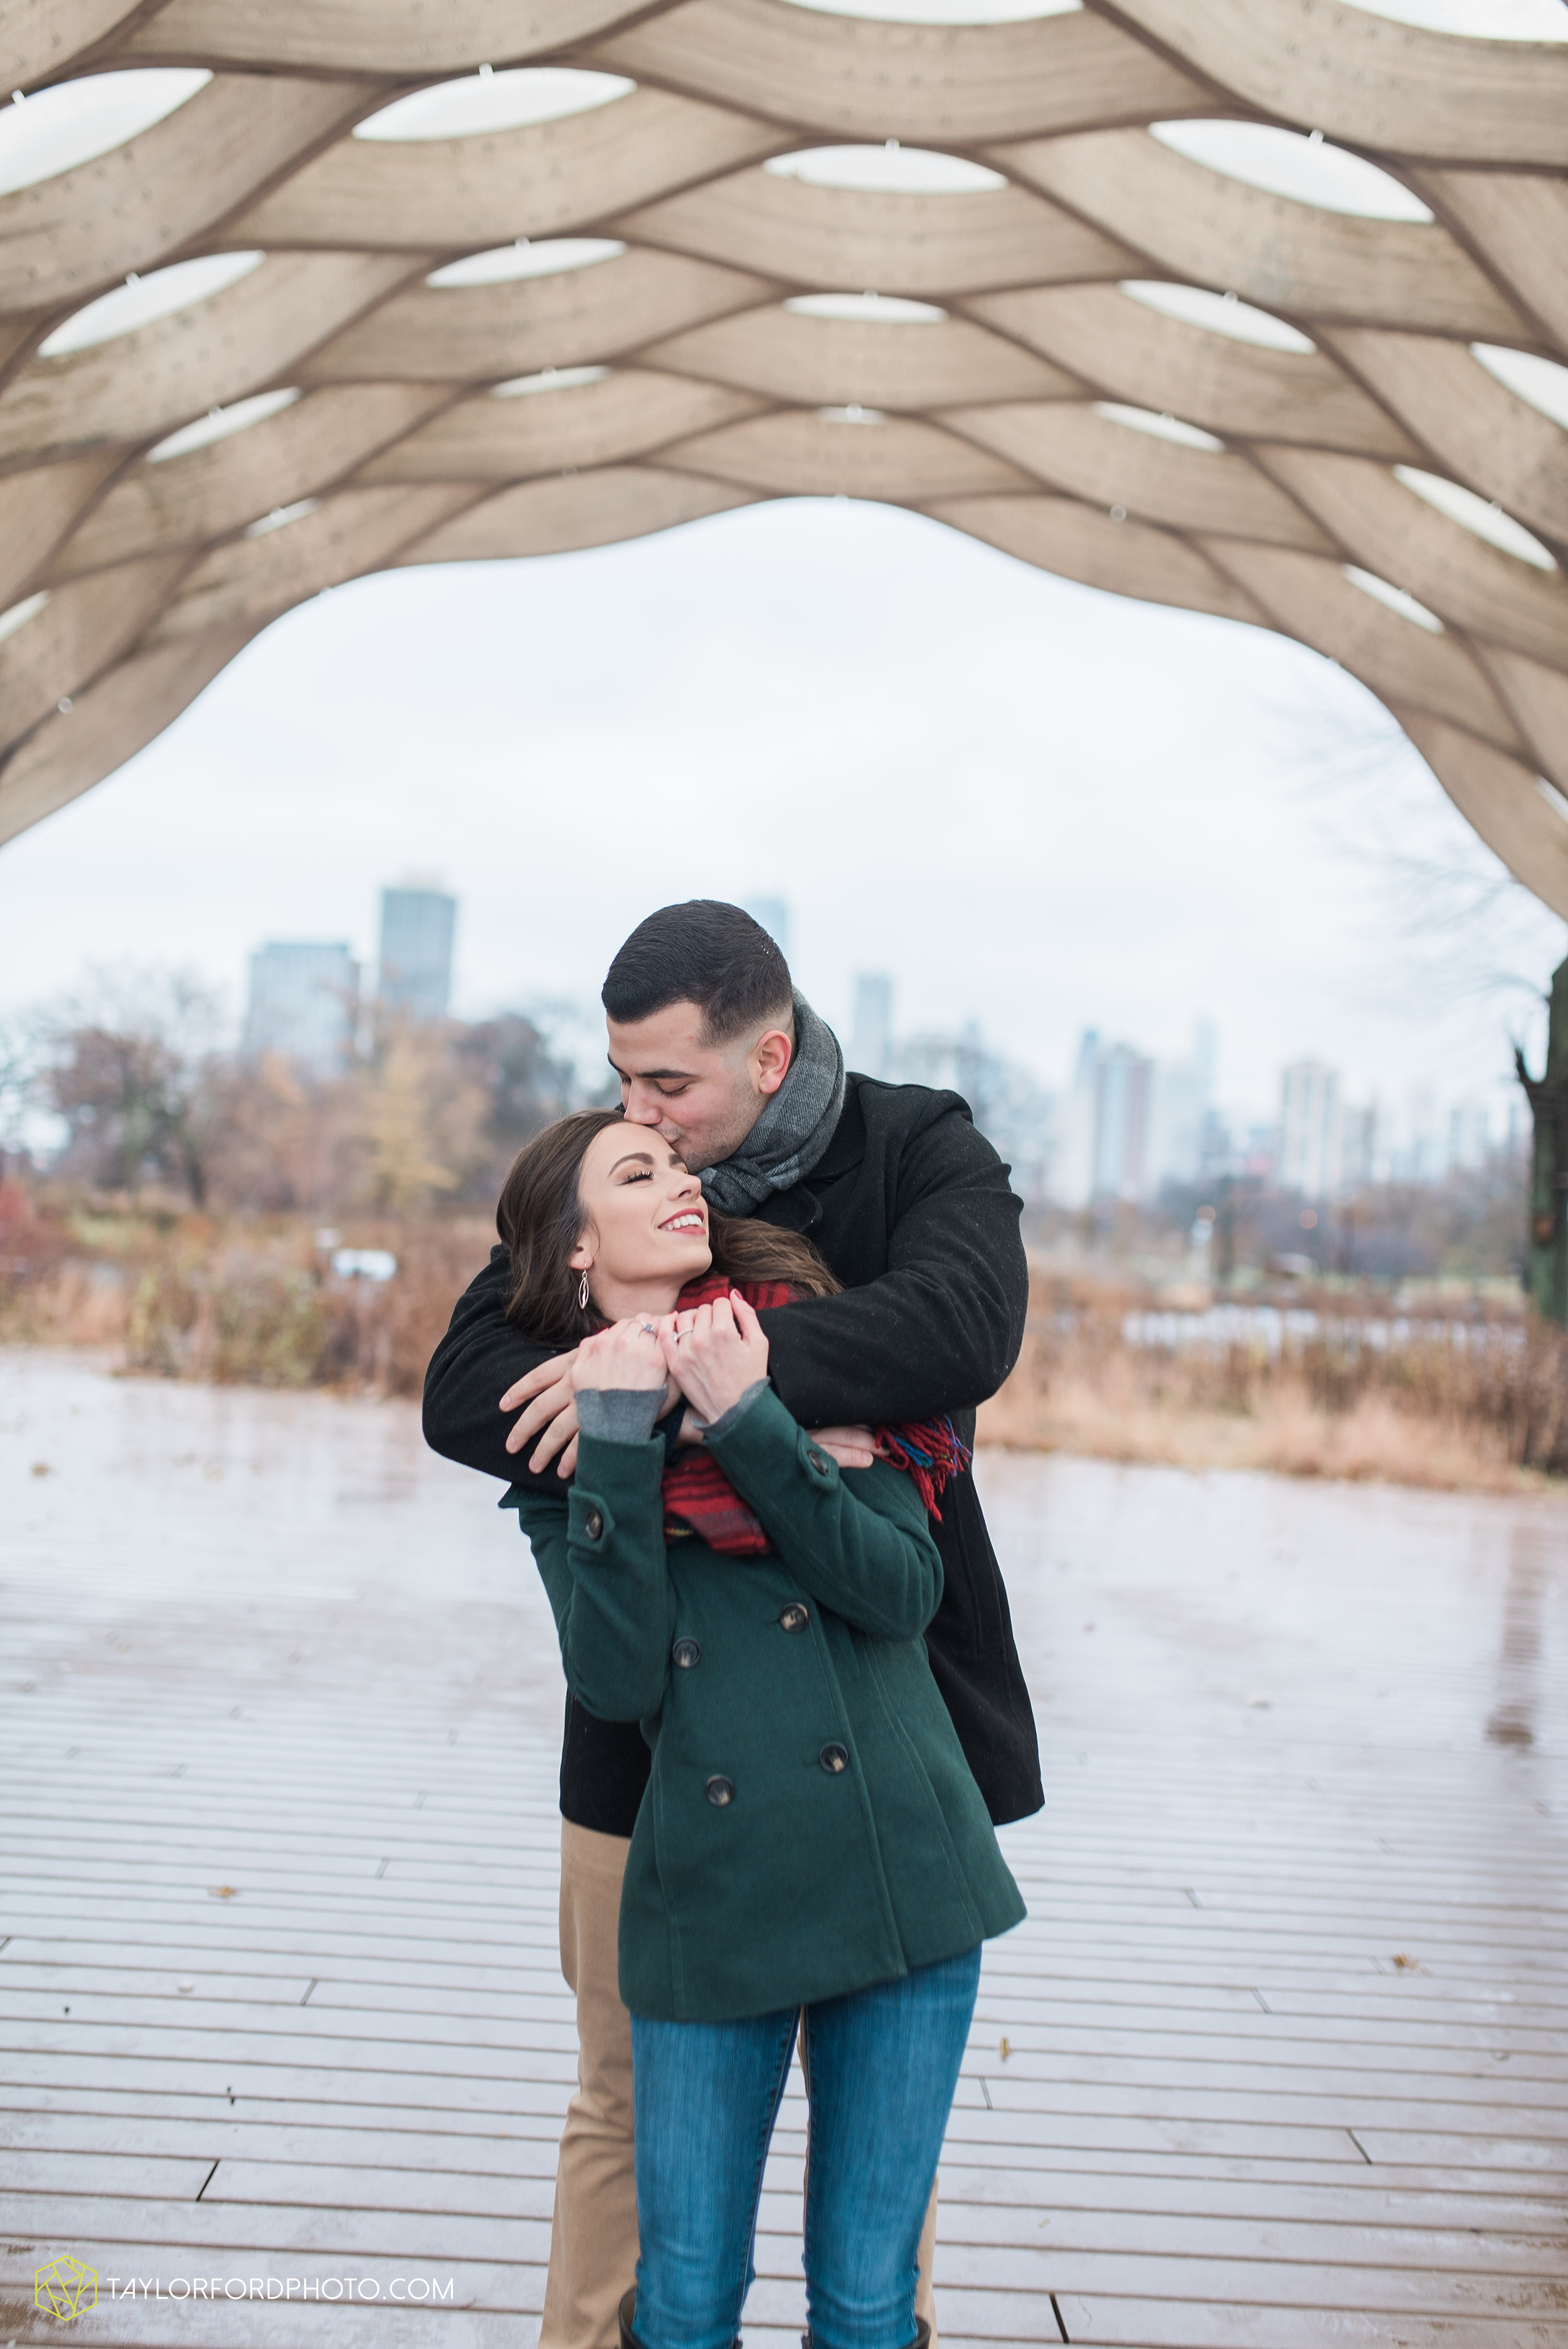 chicago-illinois-engagement-lincoln-park-zoo-downtown-millenium-park-cloud-gate-photographer-Taylor-Ford-Photography_6032.jpg